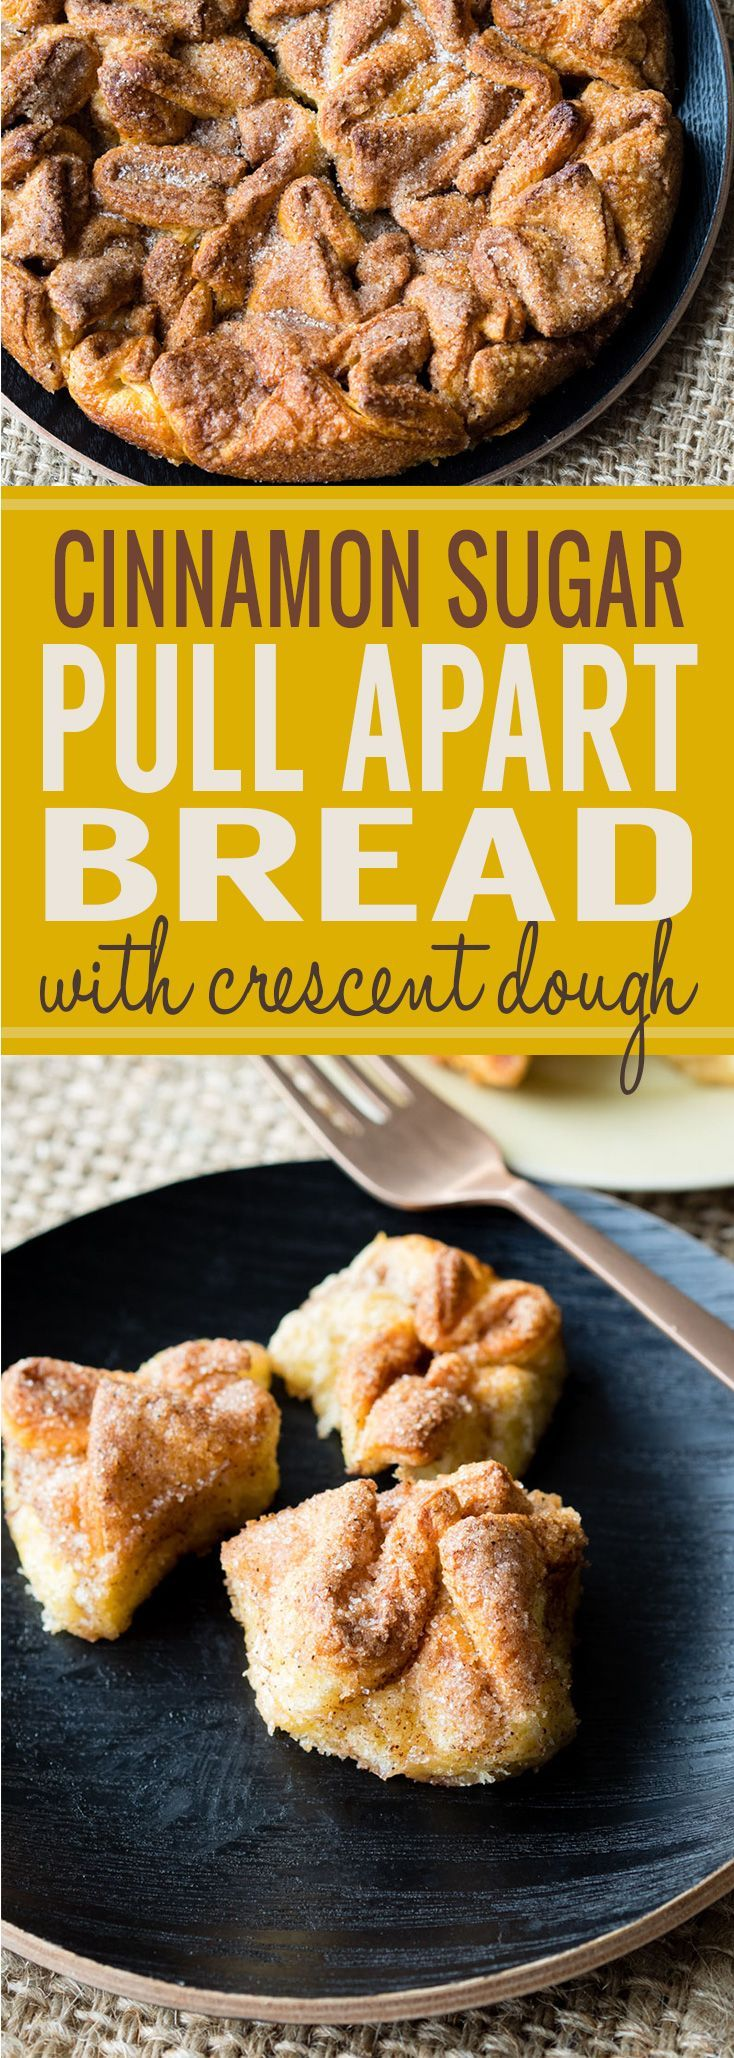 Cinnamon Sugar Pull Apart Bread made with crescent dough for a quick and tasty breakfast. You can get this in the oven in 10 minutes or less! The whole family will love this for brunch or breakfast. #pullapartbread #cinnamonsugar #fallbreakfast